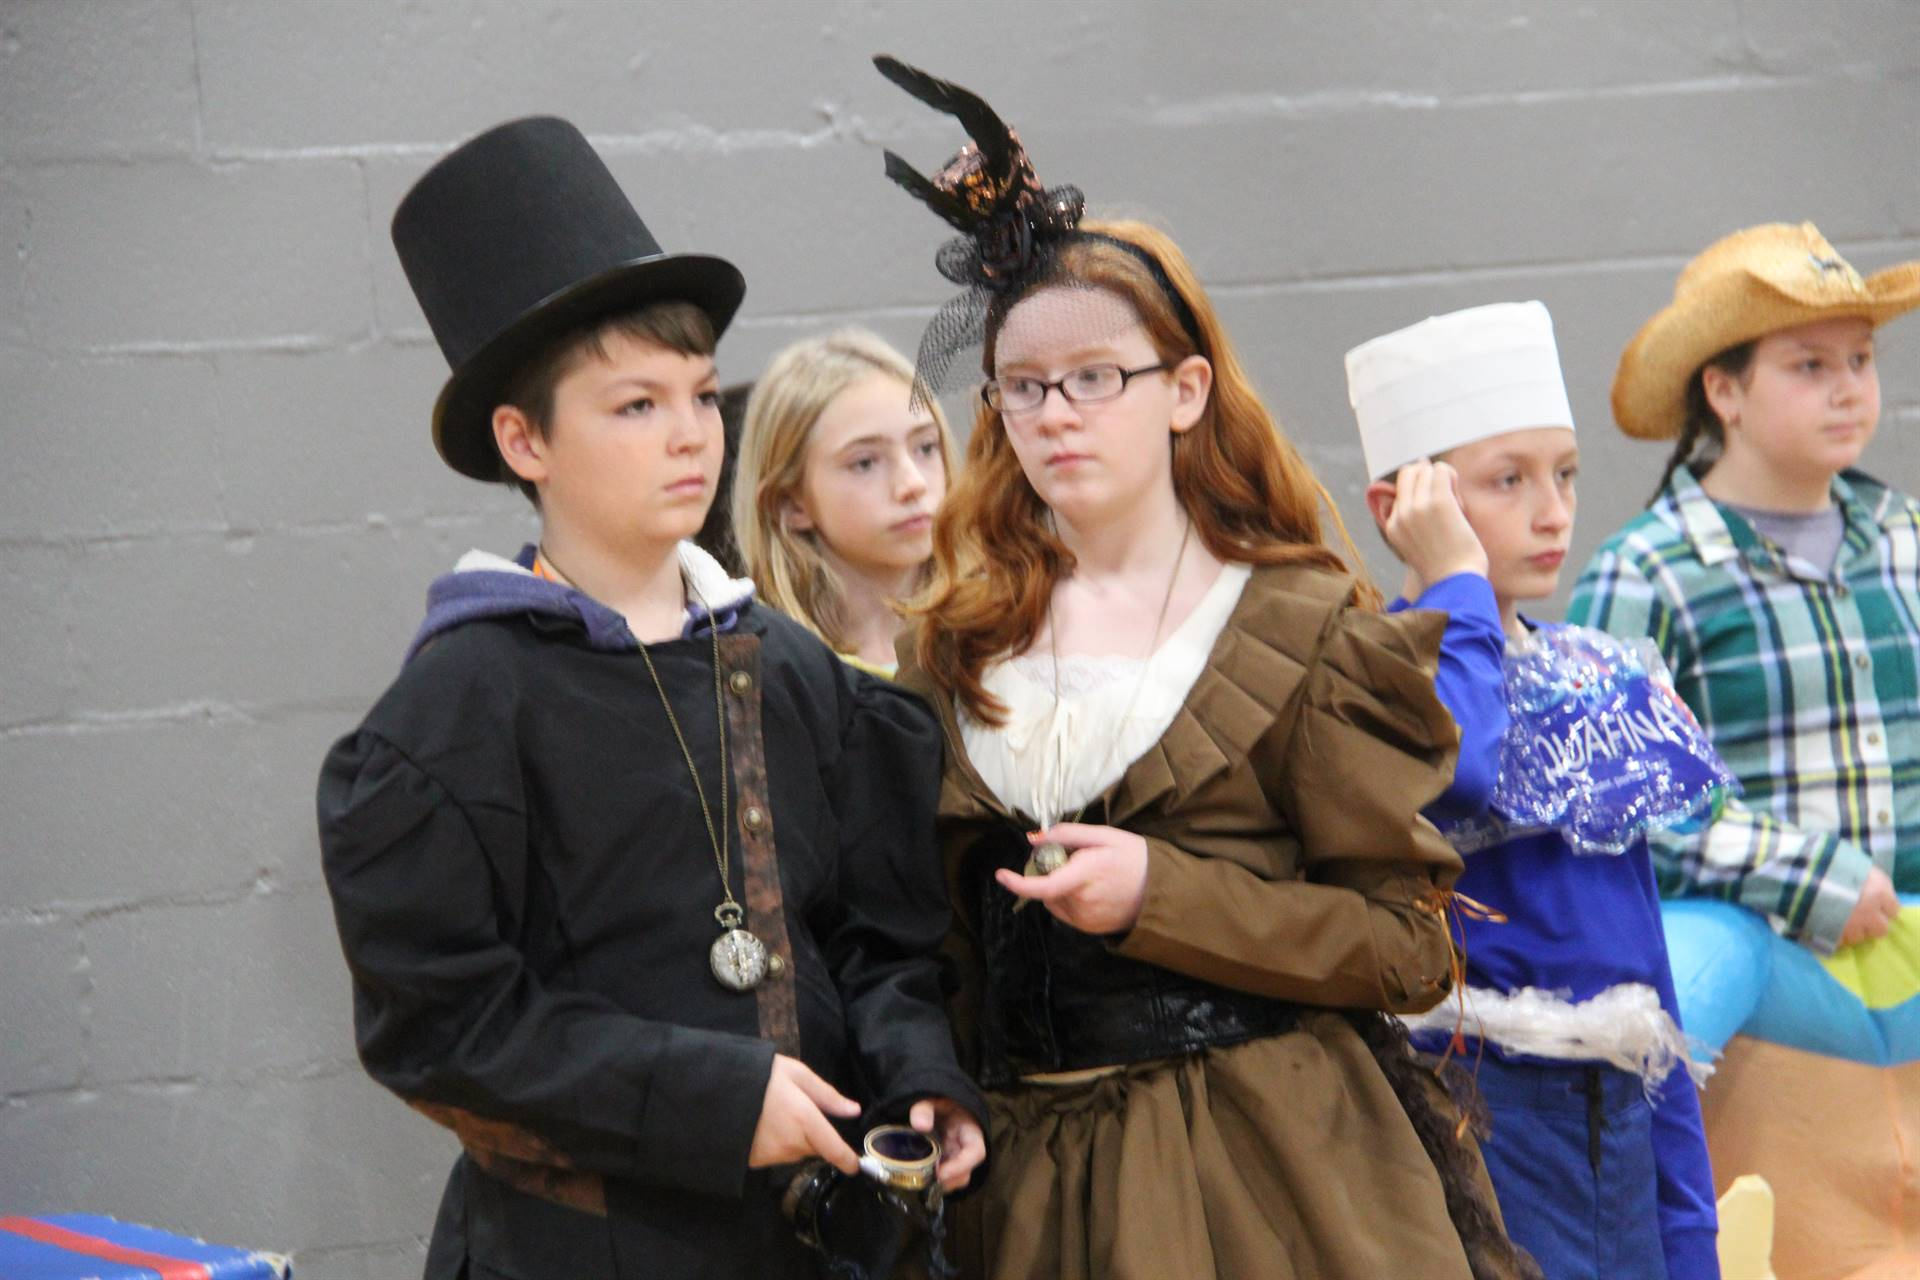 middle school students dressed in costumes